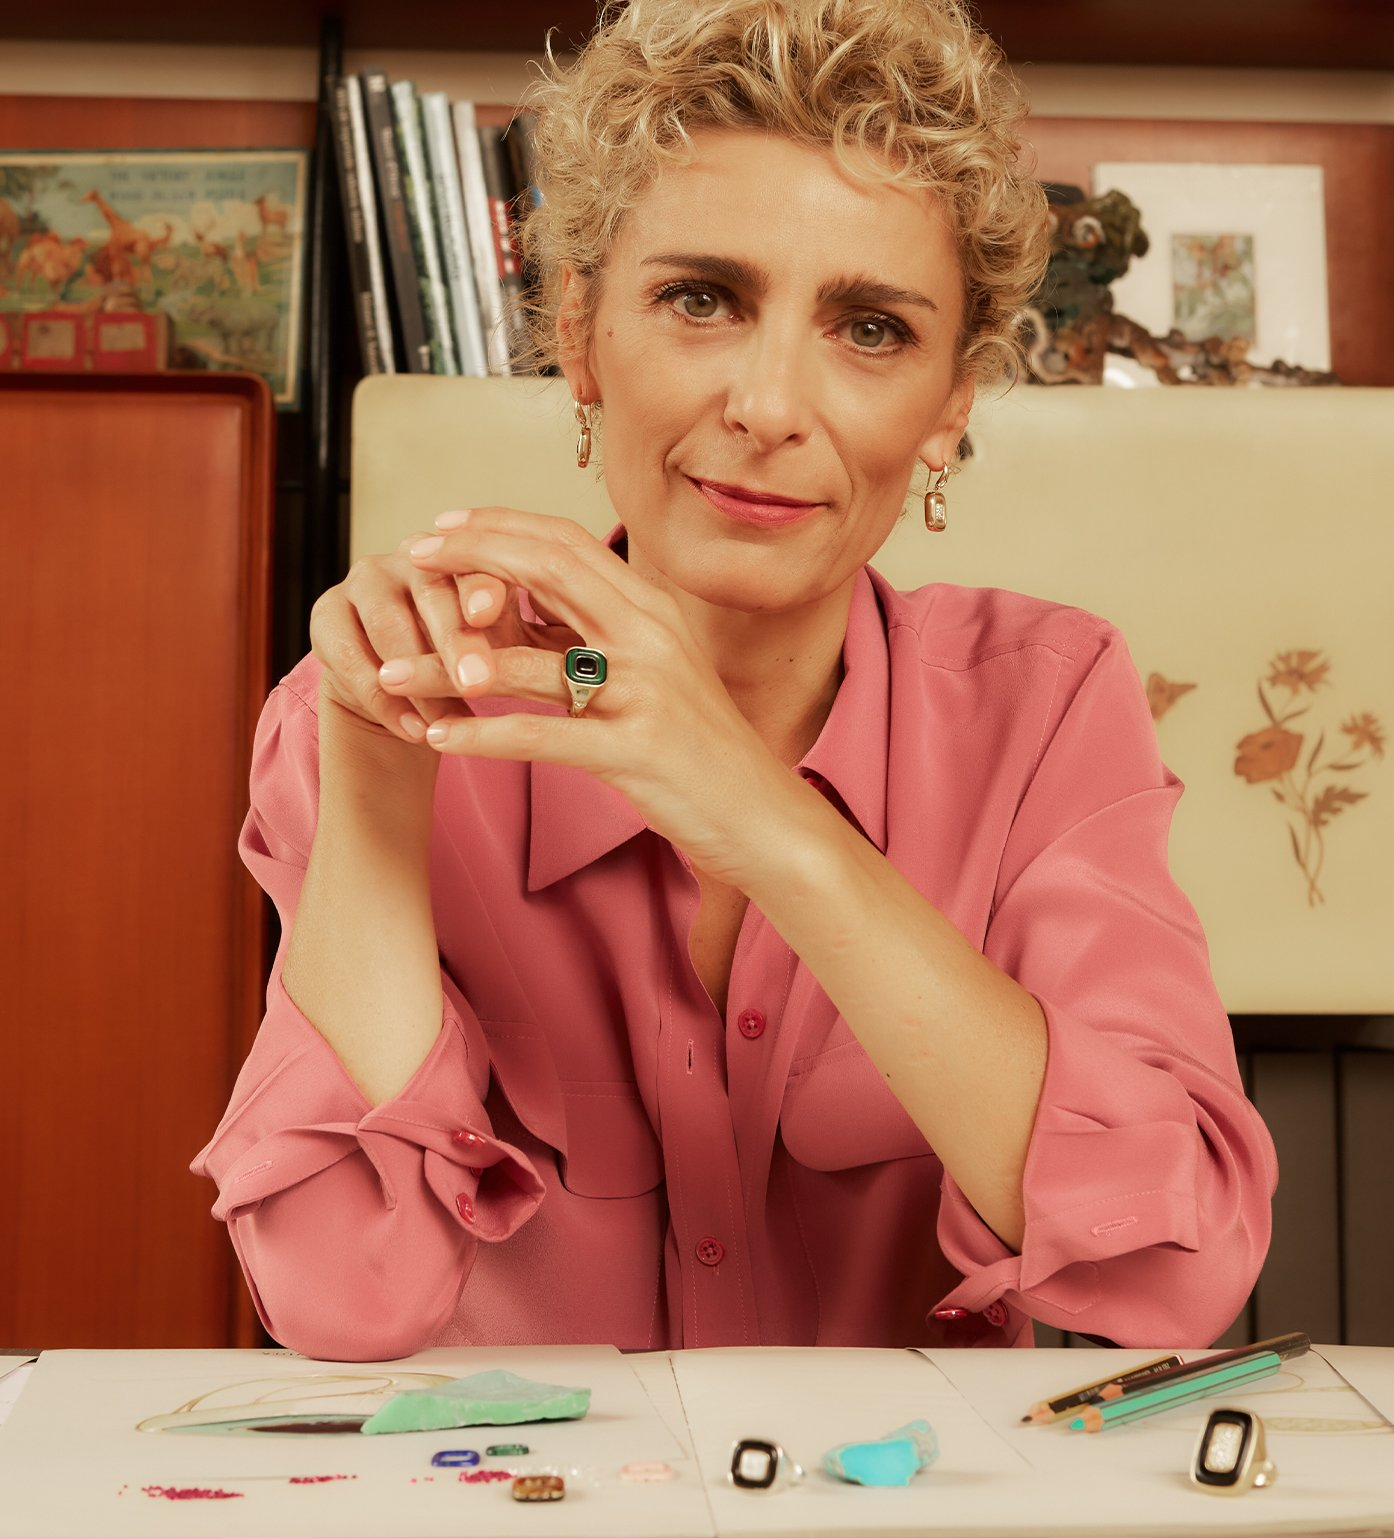 Portrait of Francesca Villa. She has short, curly blond hair and is wearing a pink collared shirt. On her desk are two of her ring peices.